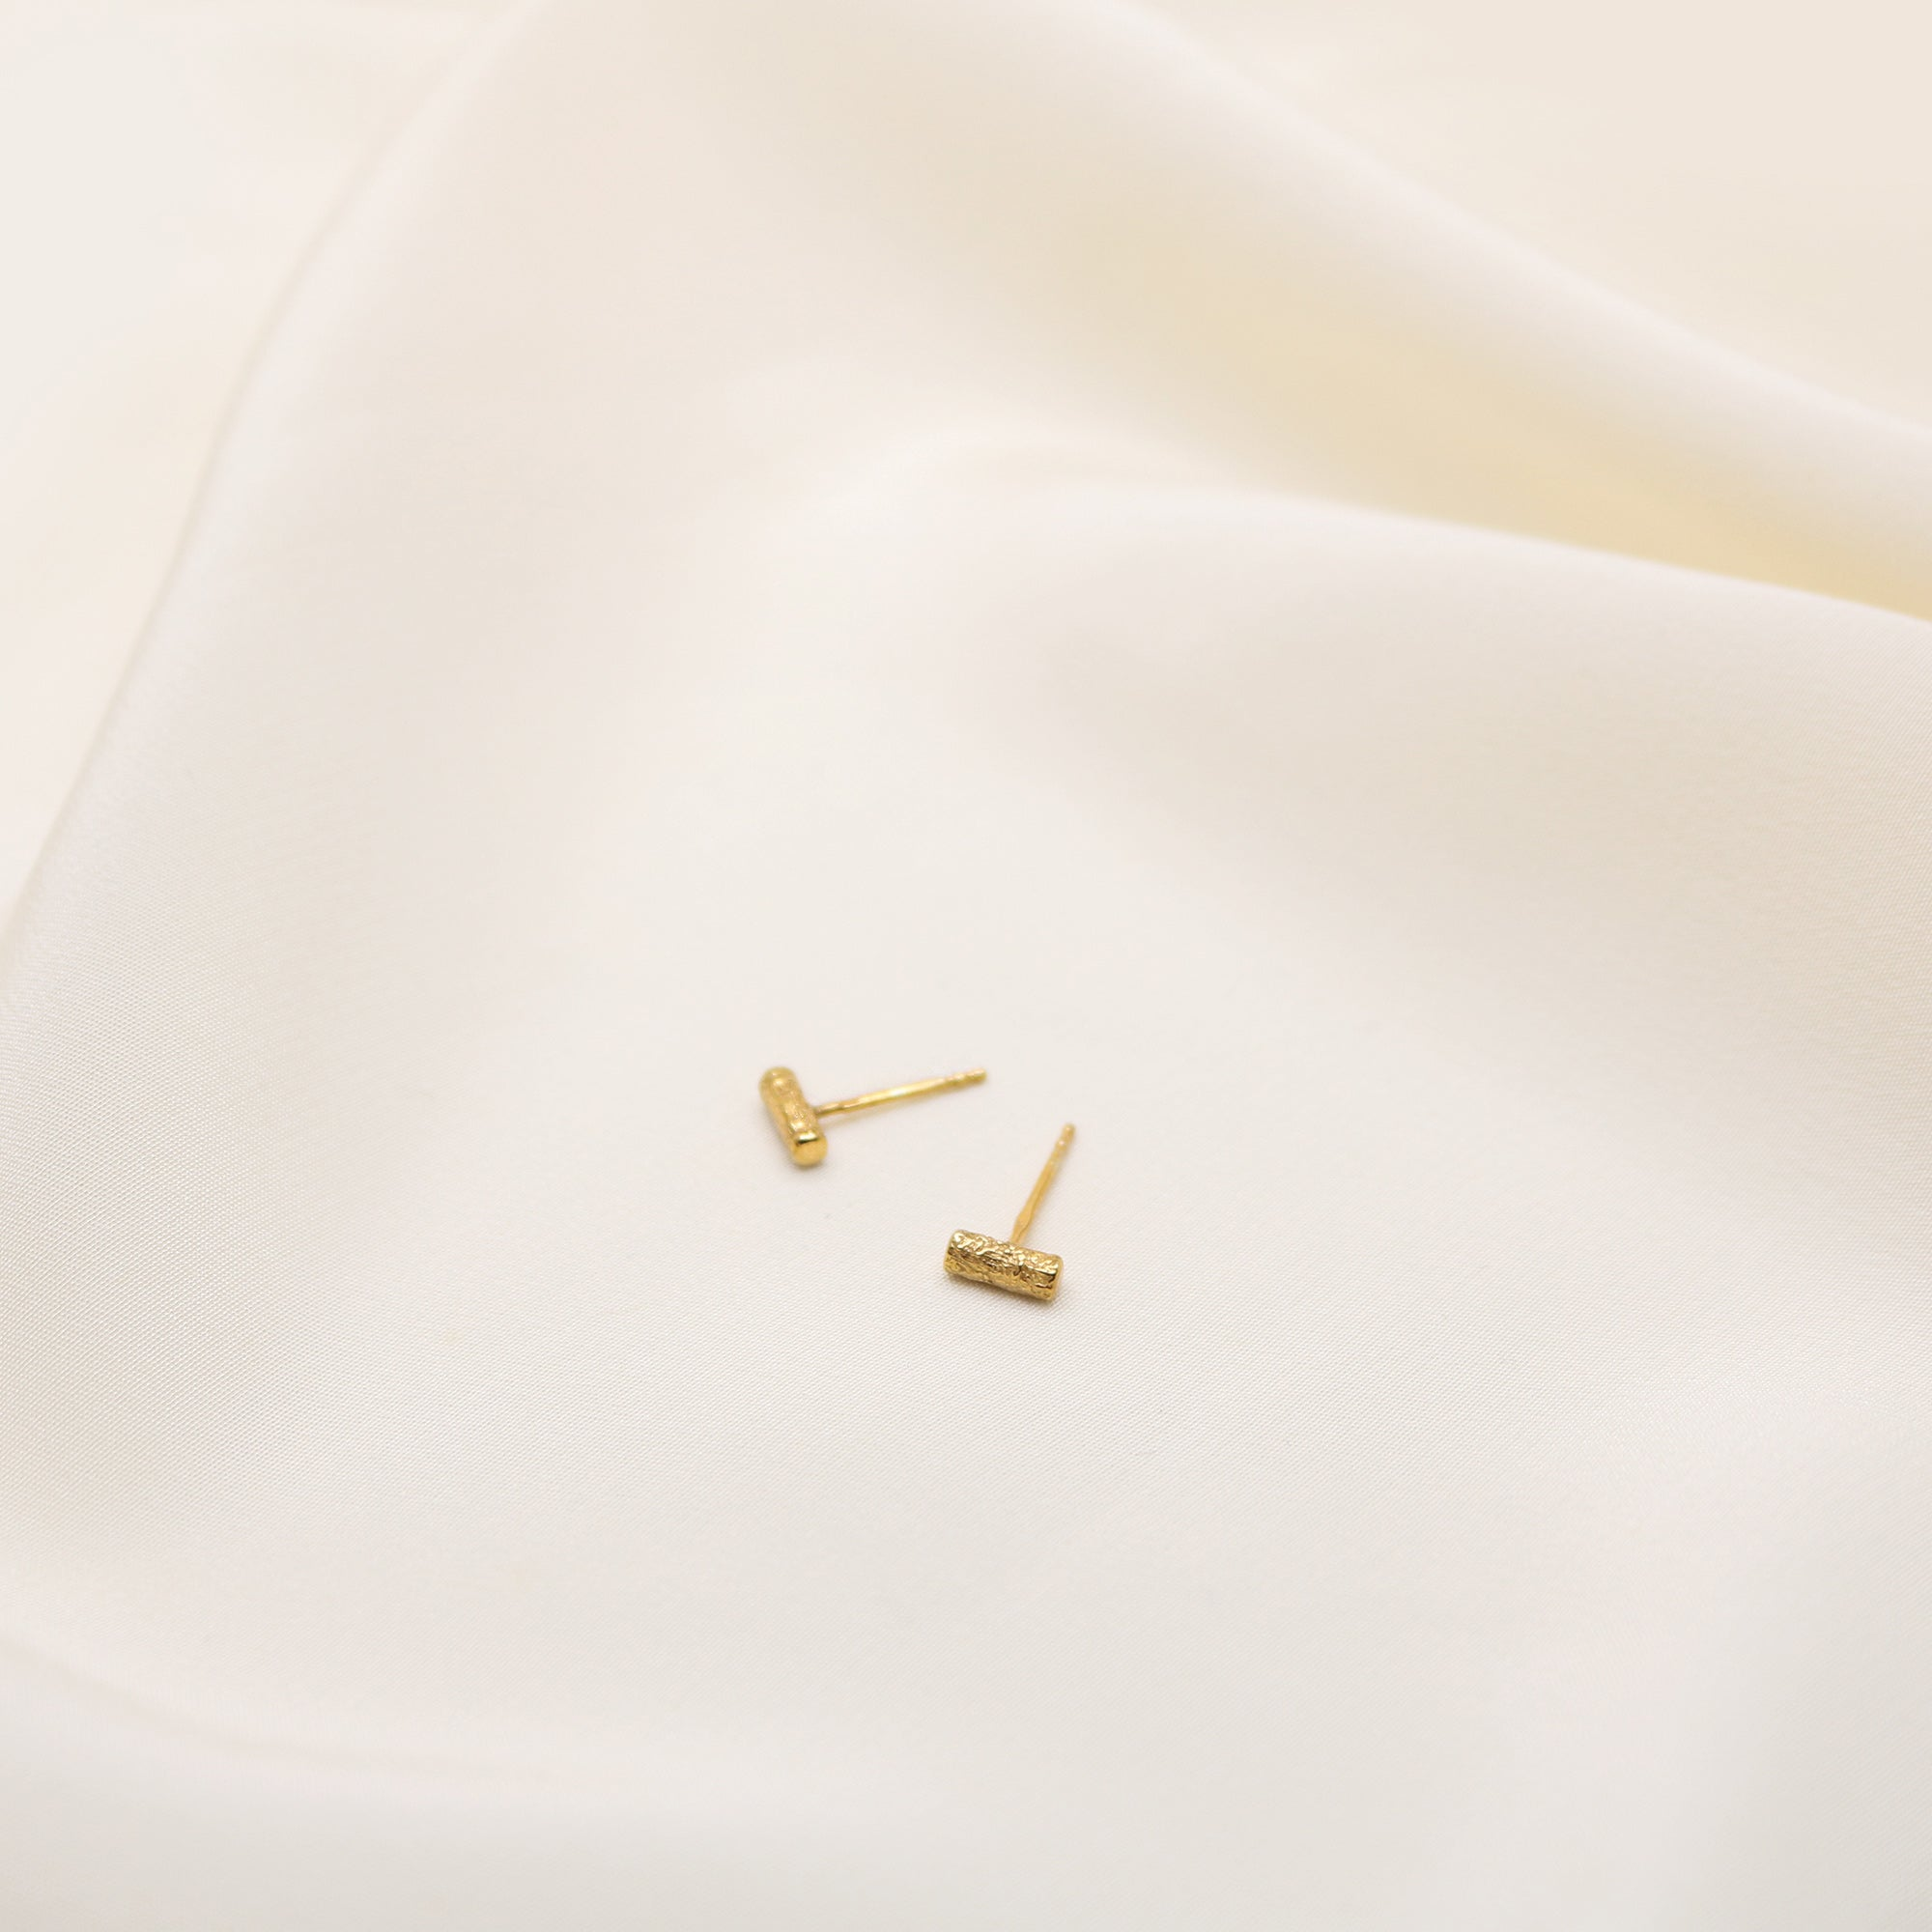 Wabi Mini Mini Earrings – Paula Vieira Jewellery